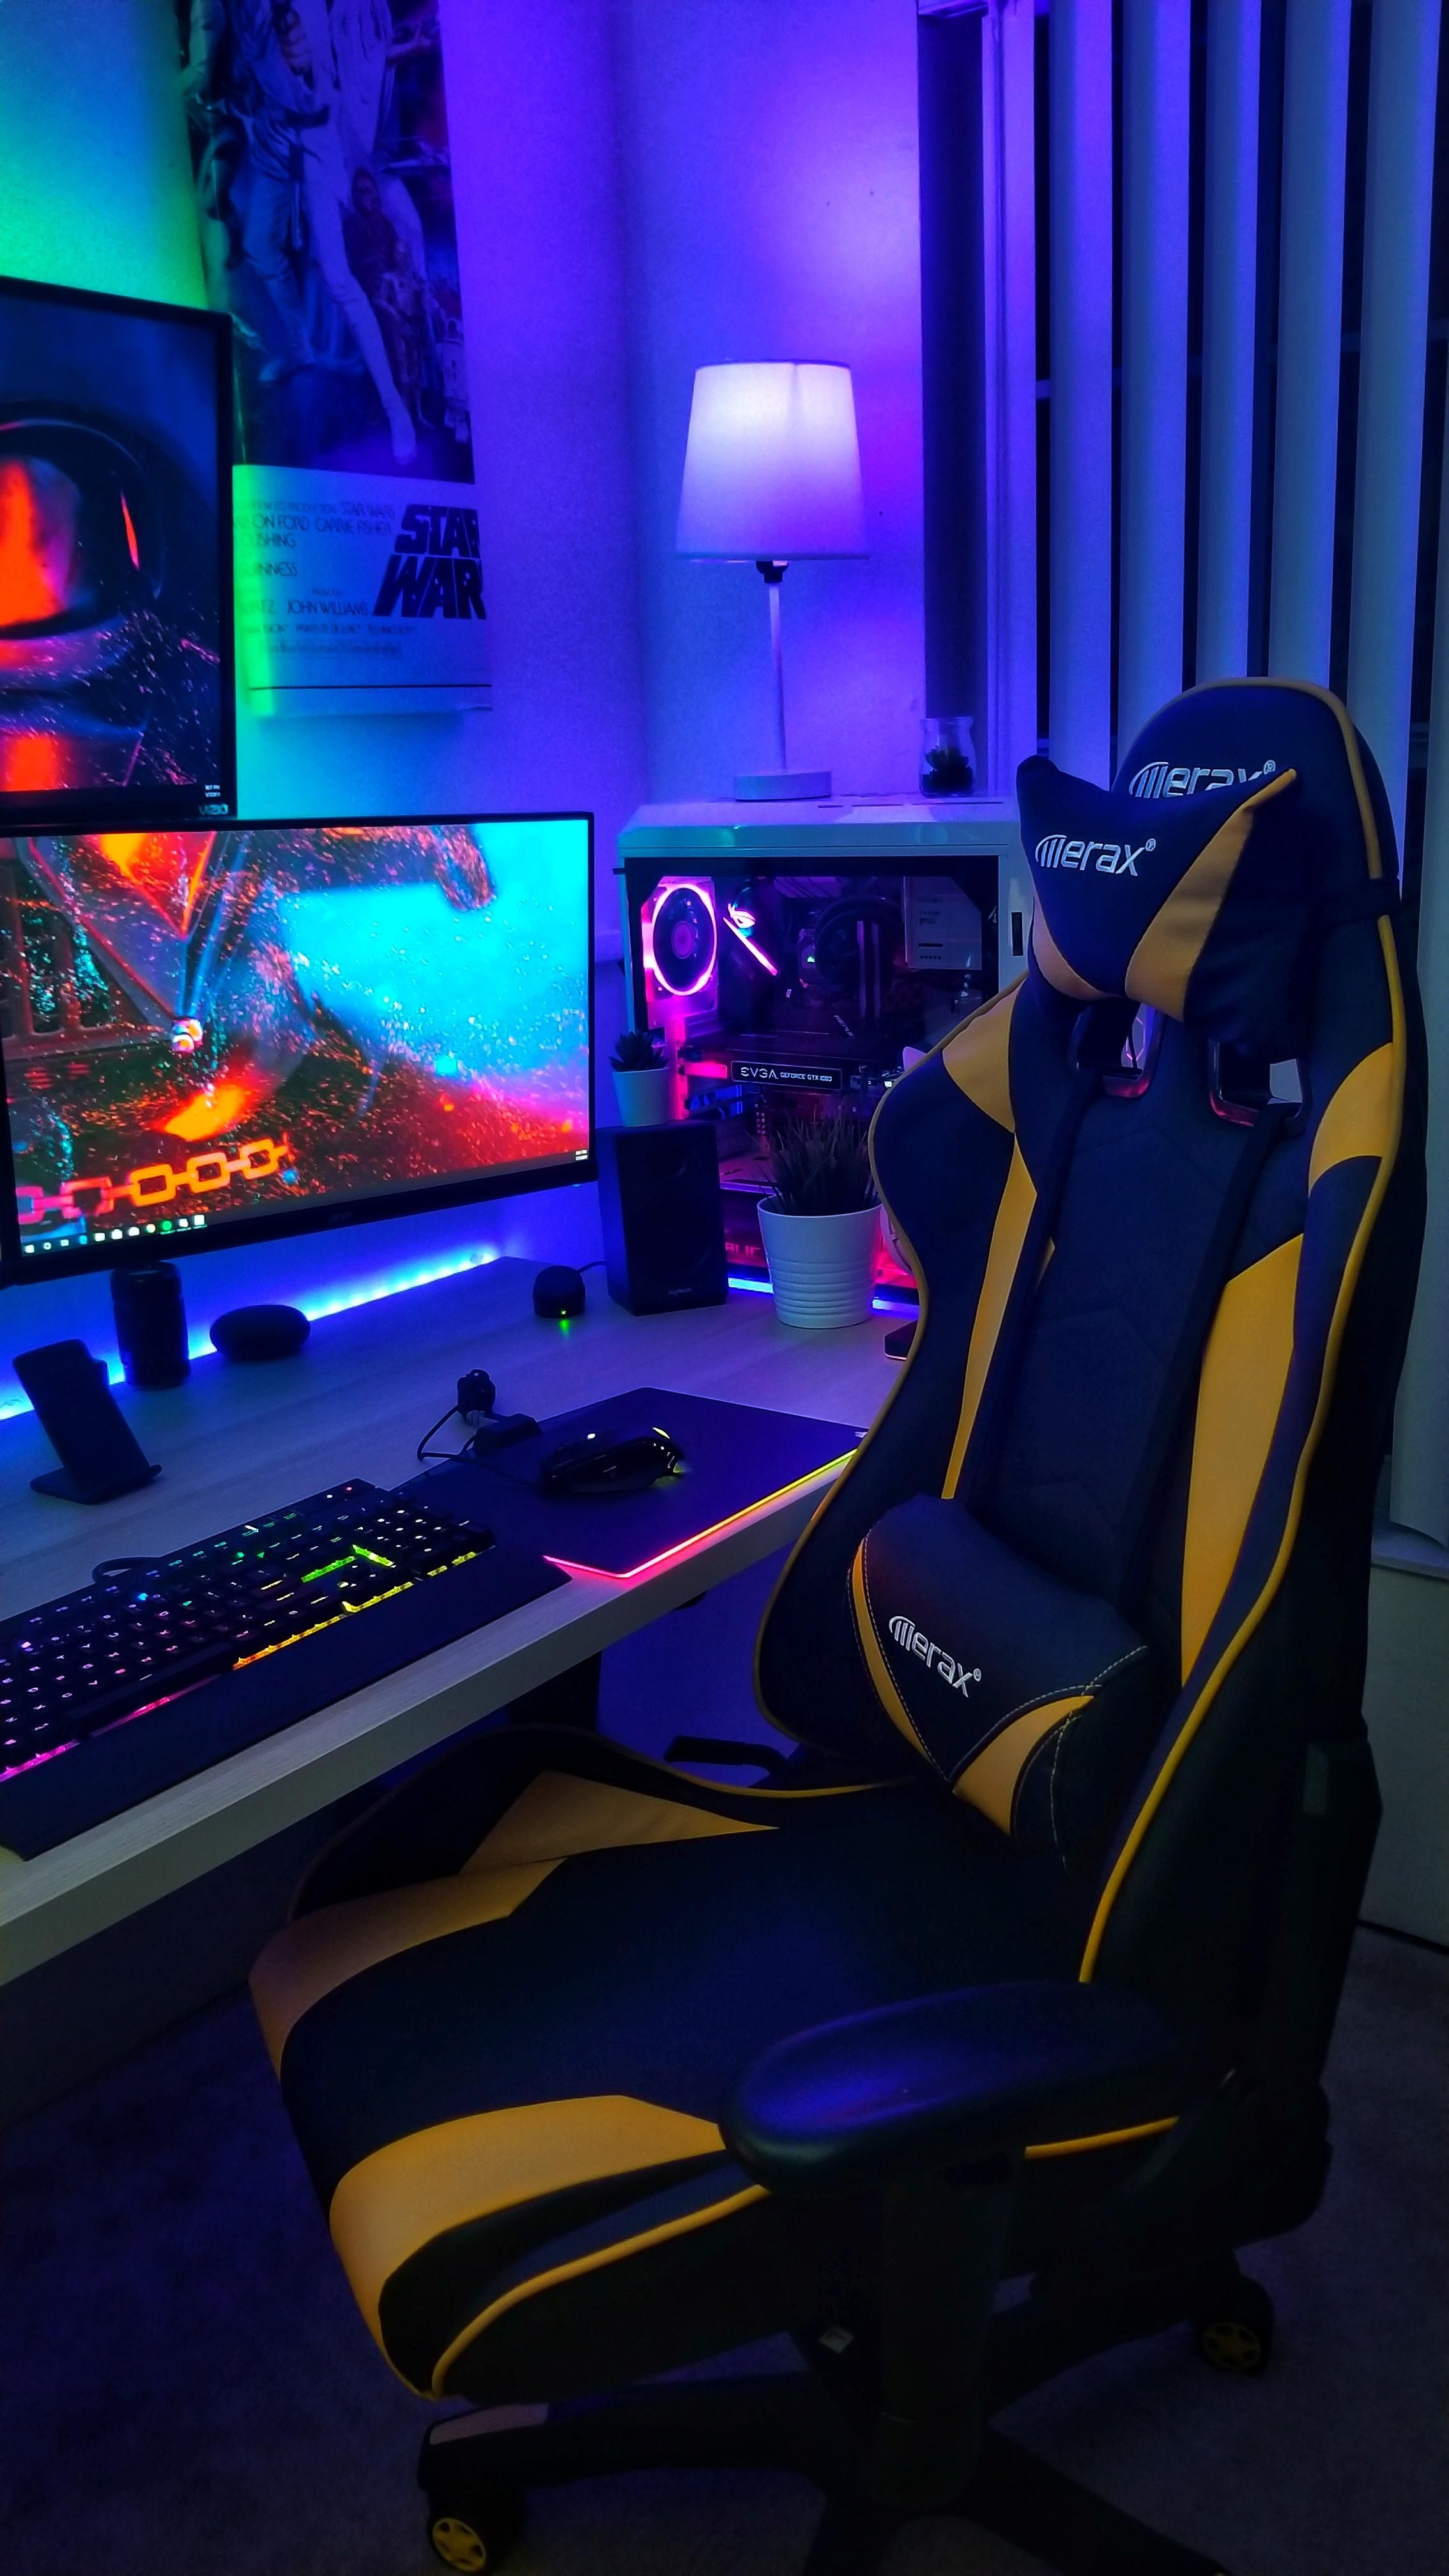 Picked Up A New Gaming Chair For The Setup I Ve Never Had A Chair Like This Before It S A Nice Change Gaming Room Setup Computer Gaming Room Game Room Design